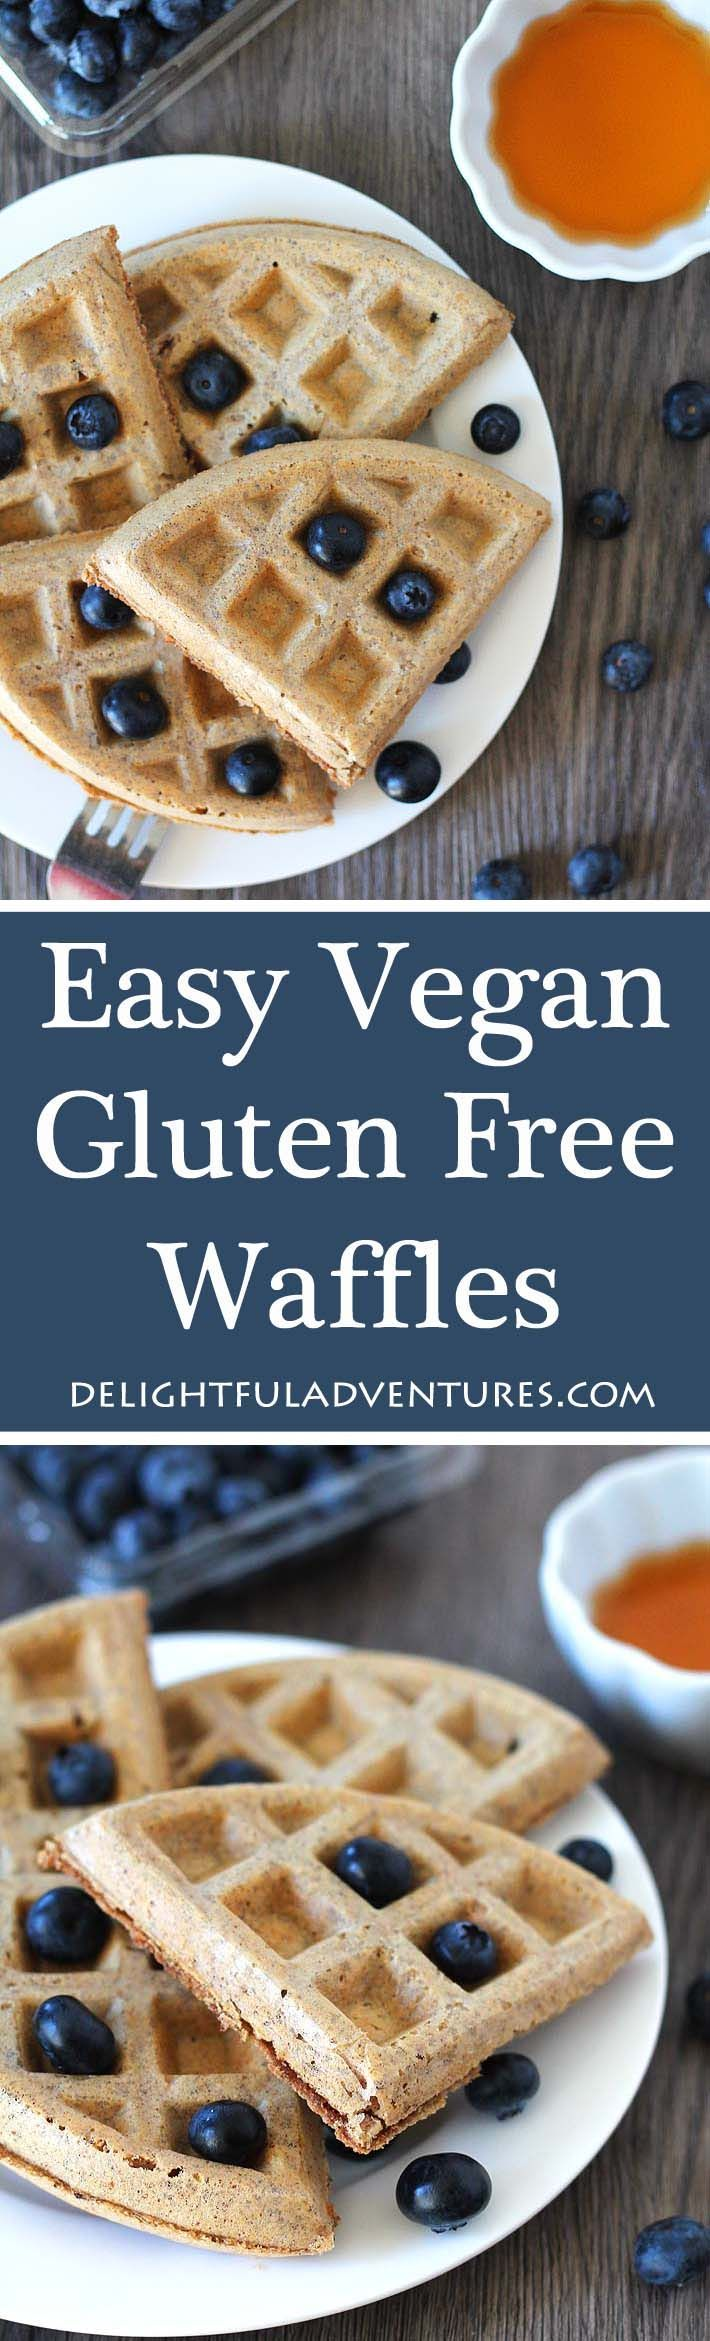 Look no further, this recipe for easy vegan gluten free waffles is what you've been looking for! Crispy on the outside and soft and fluffy on the inside. via @delighfuladv